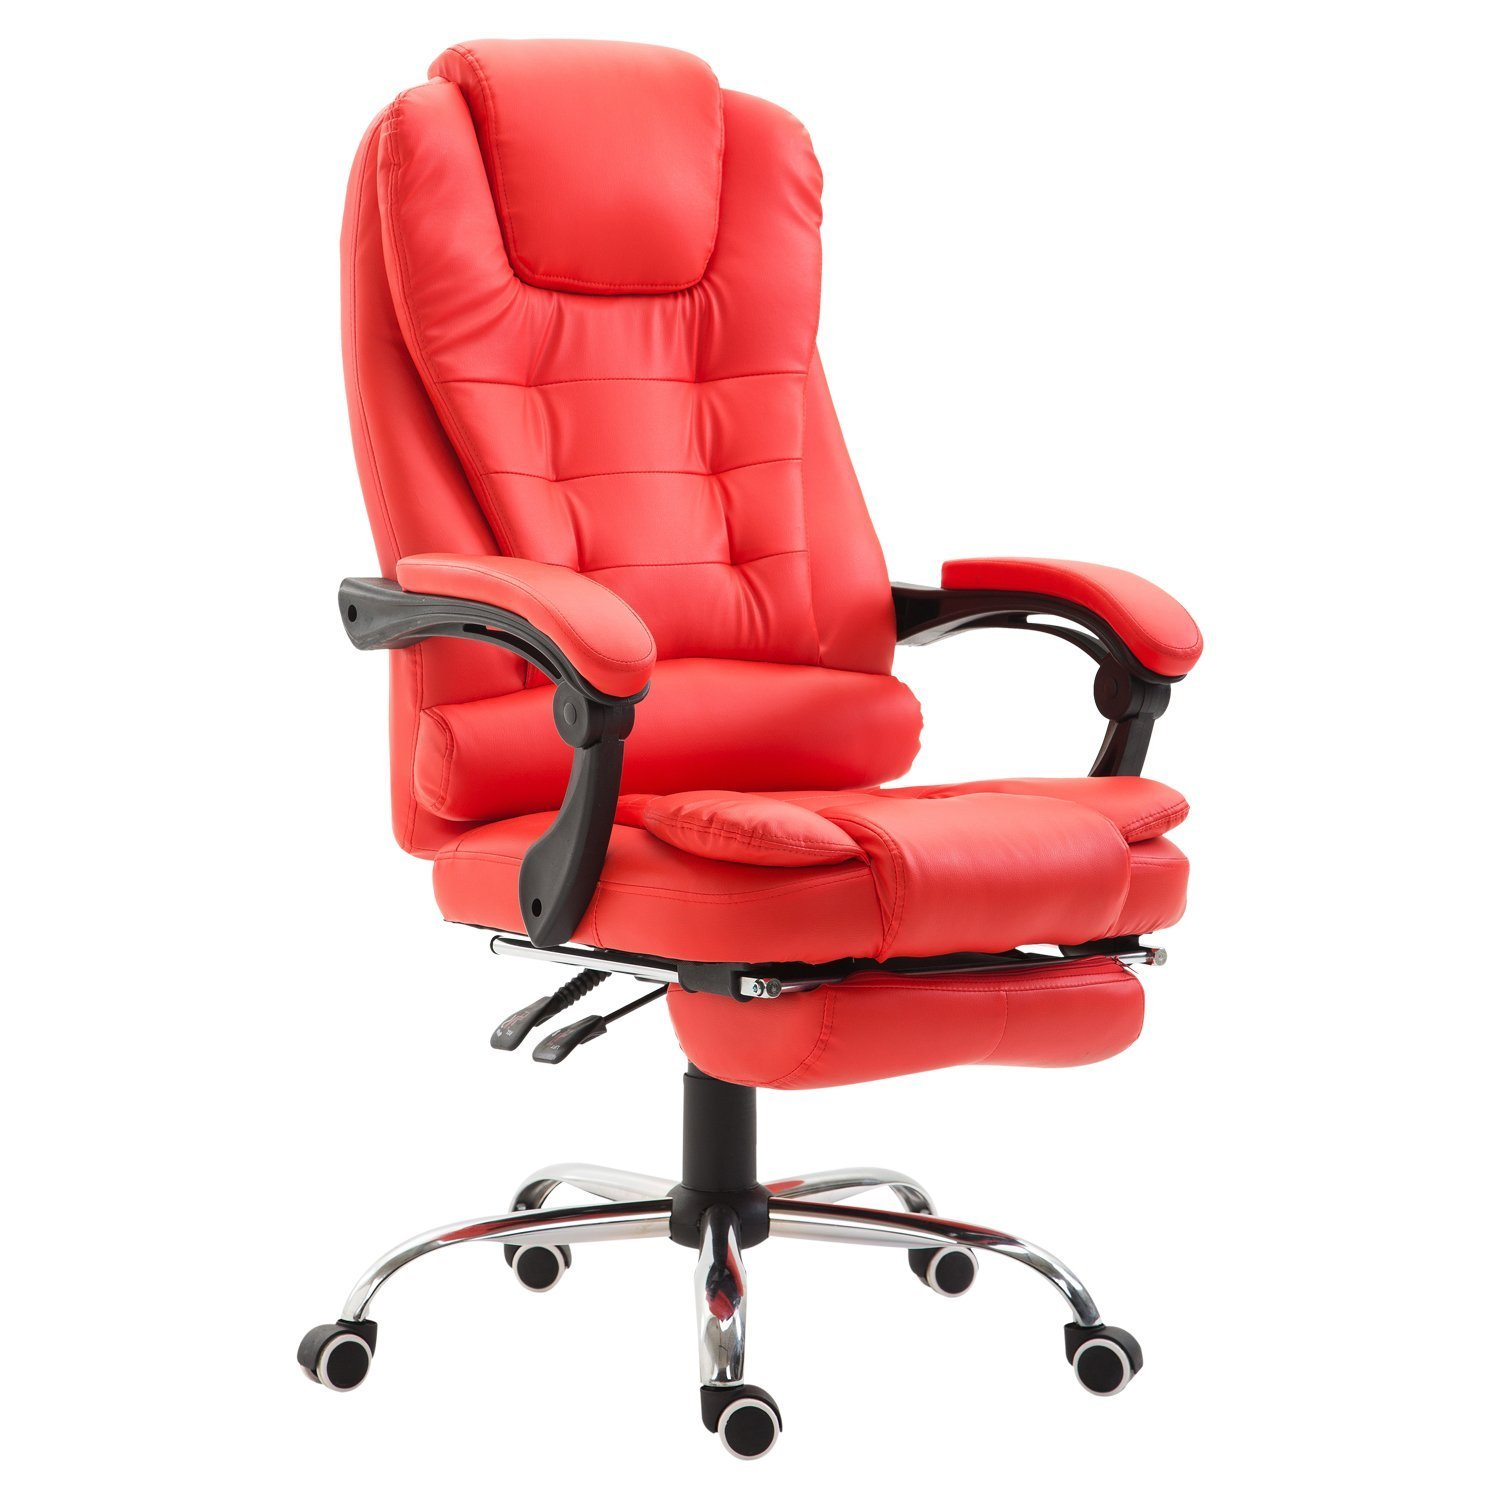 Homcom Reclining Pu Leather Executive Home Office Chair With